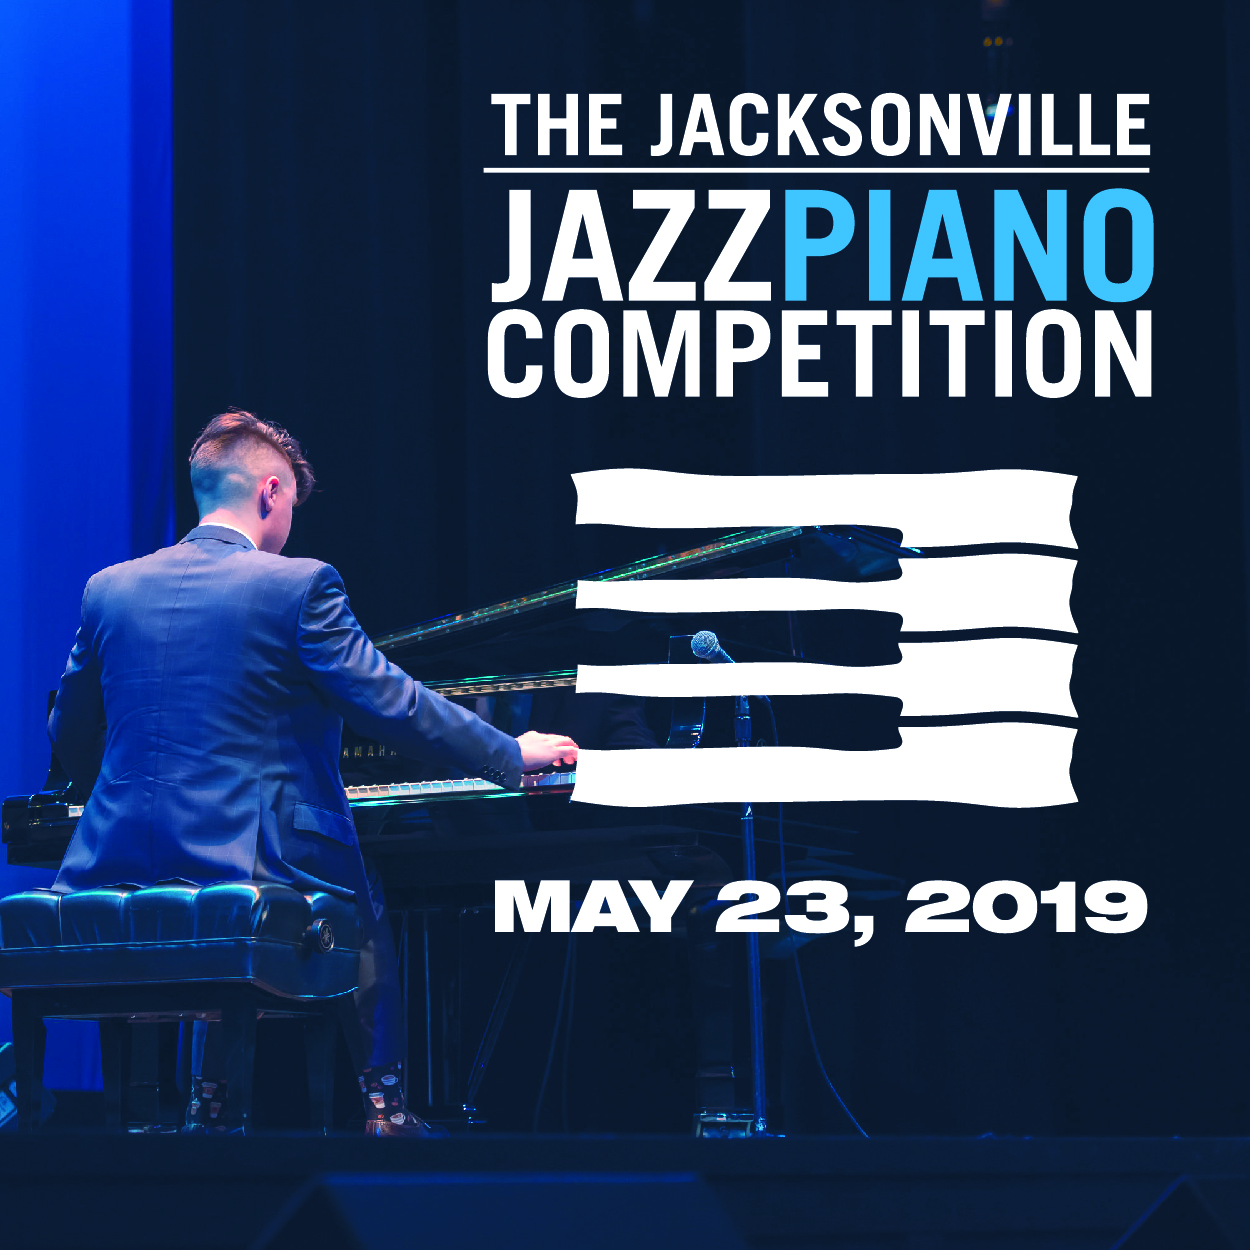 Jacksonville Jazz Piano Competition – Present by the City of Jacksonville and Keyboard Connection